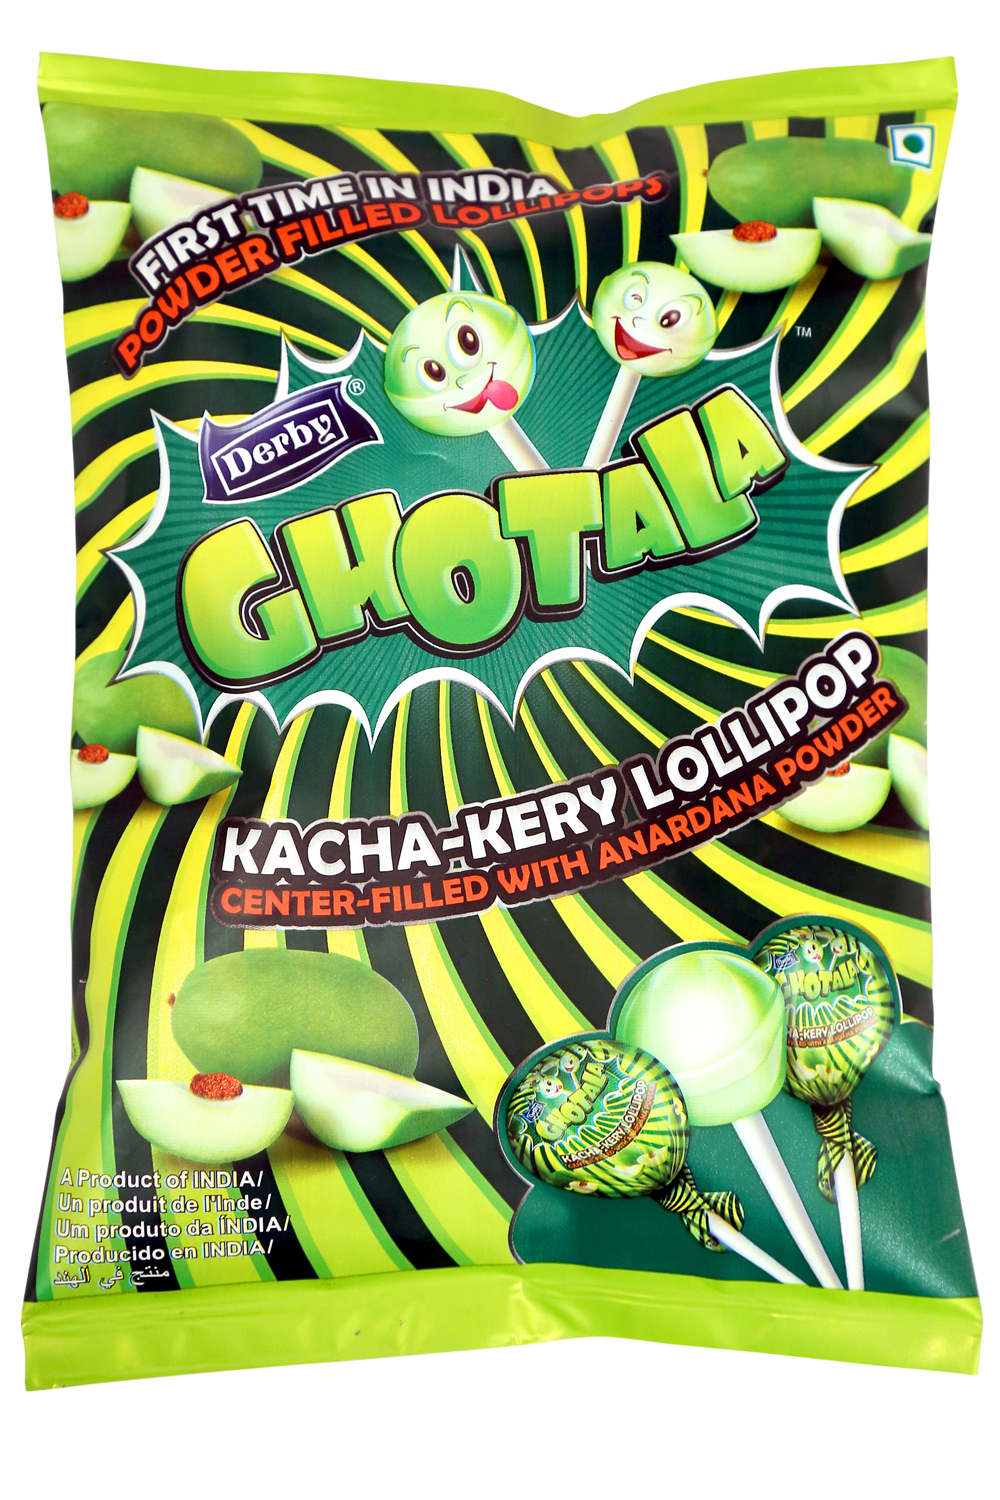 Ghotala, Kacha keri flavoured lollipop